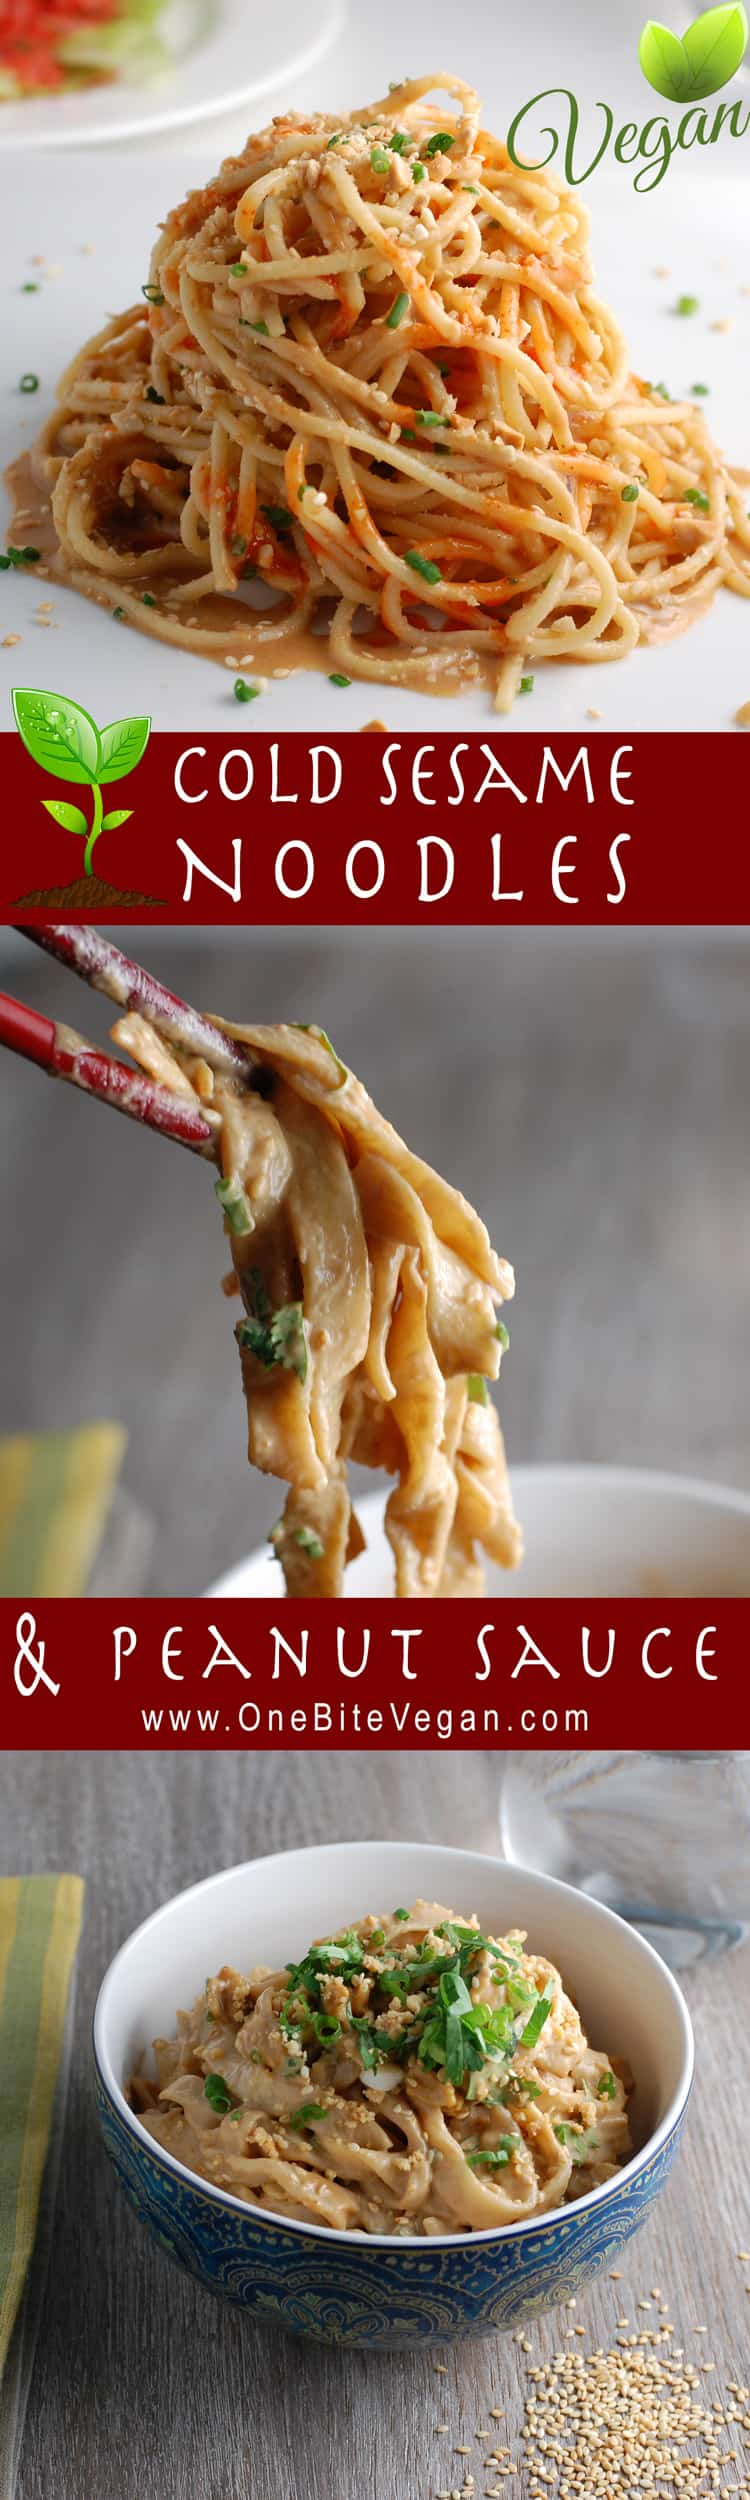 My best plant-based cold sesame noodles with peanut sauce recipe. Made with fresh or store-bought noodles it is vegan comfort food at its finest.